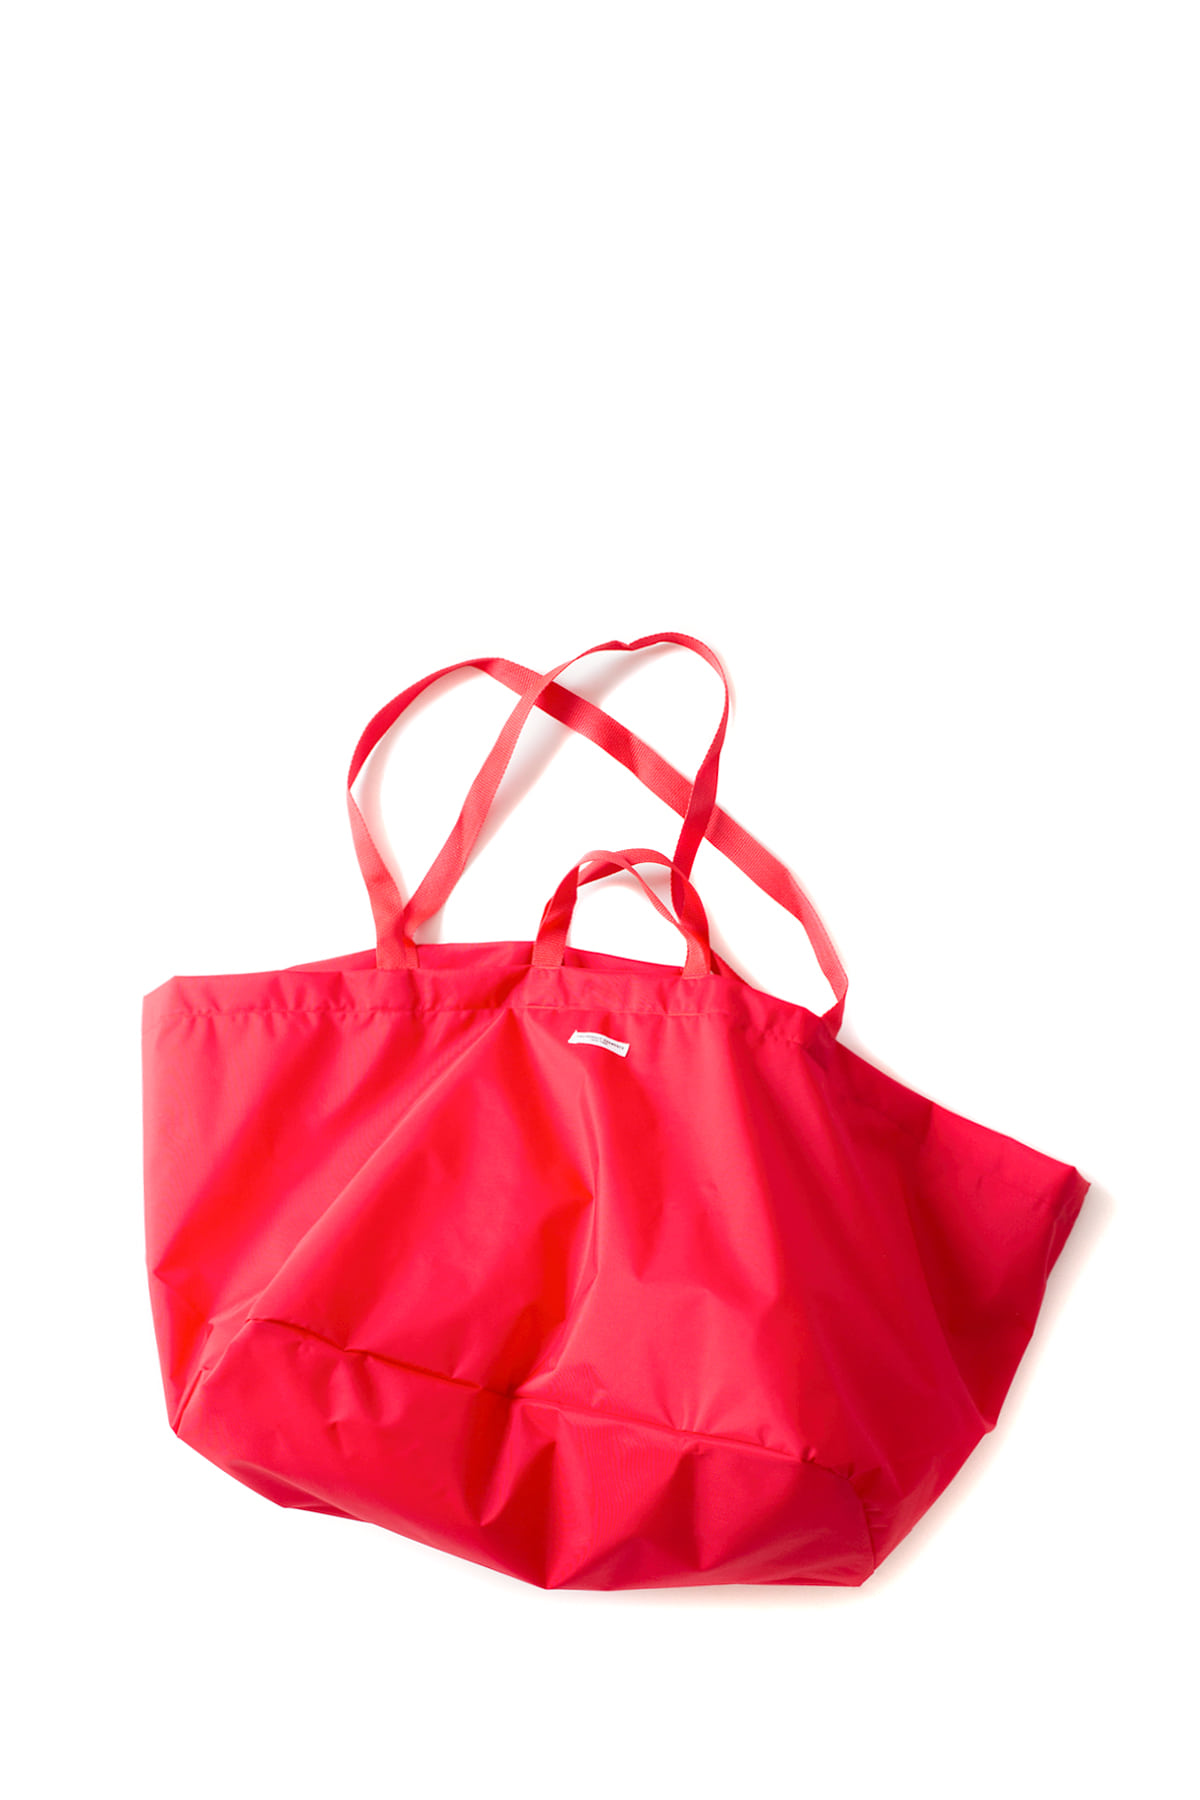 Engineered Garments : Weekend Bag (Red Pack)